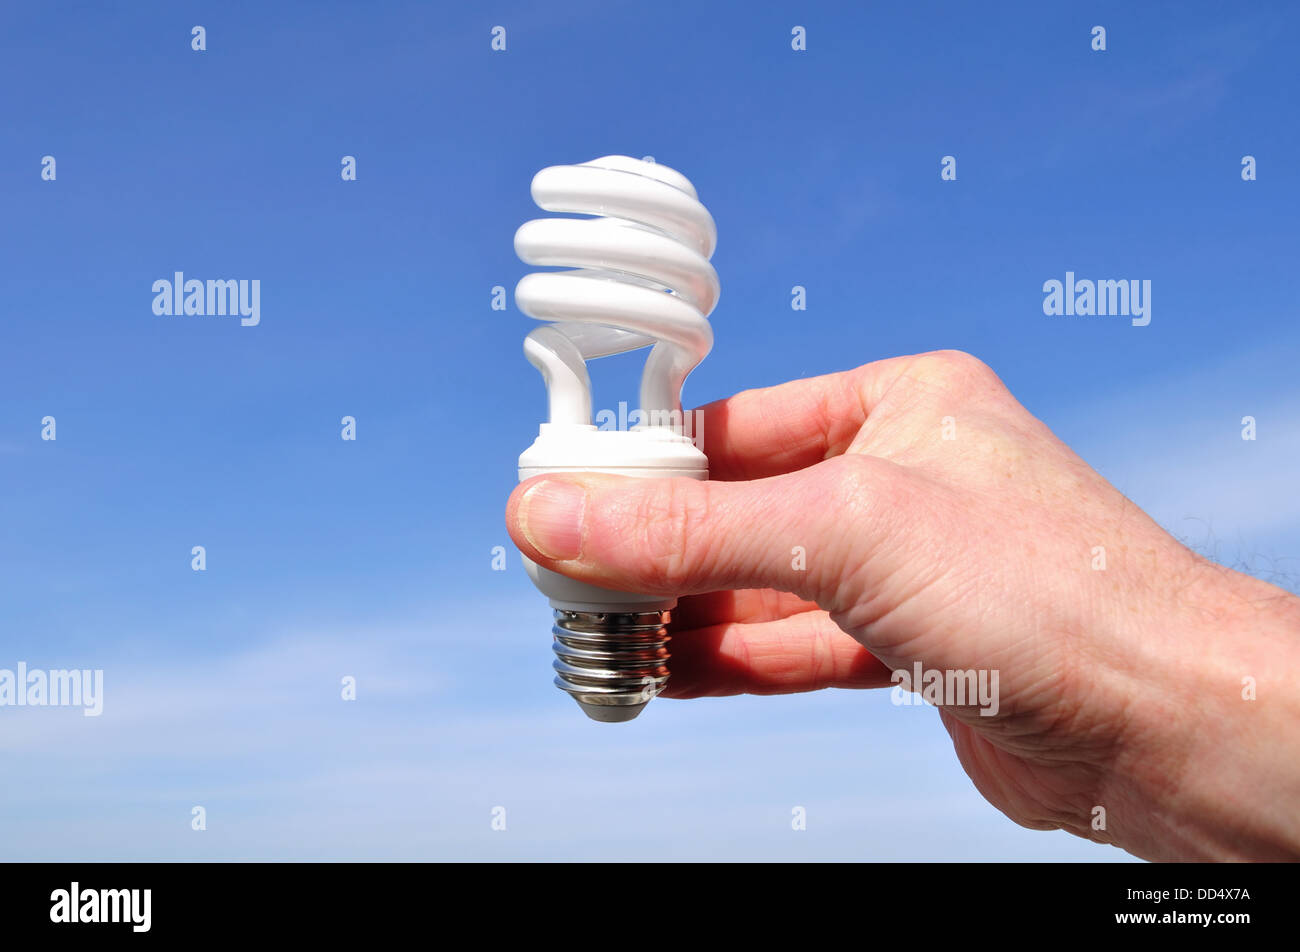 Hand holding a low energy light bulb - Stock Image